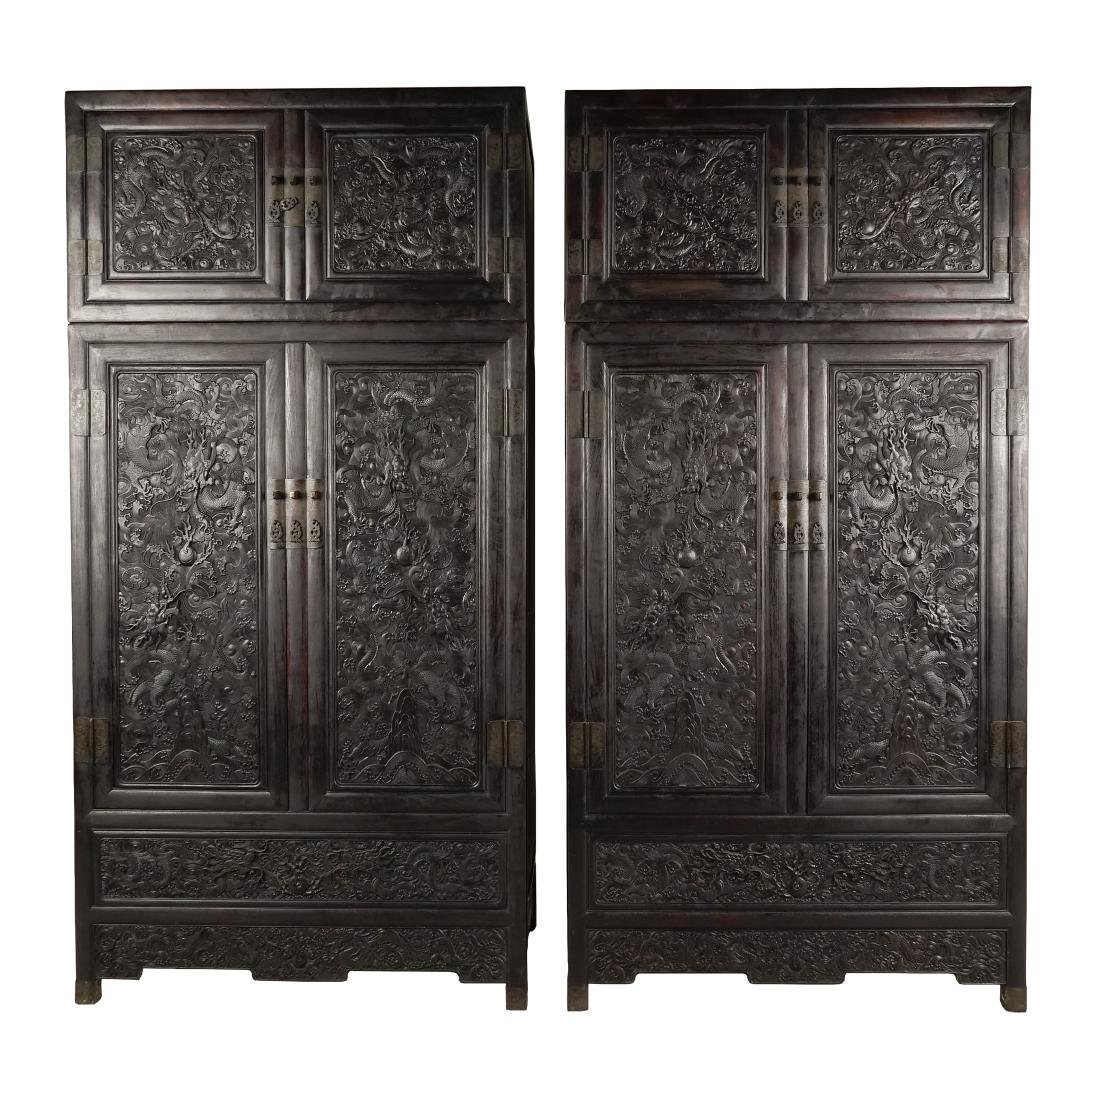 A PAIR OF ZITAN ARMOIRES WITH TOP-MOUNTED CABINETS